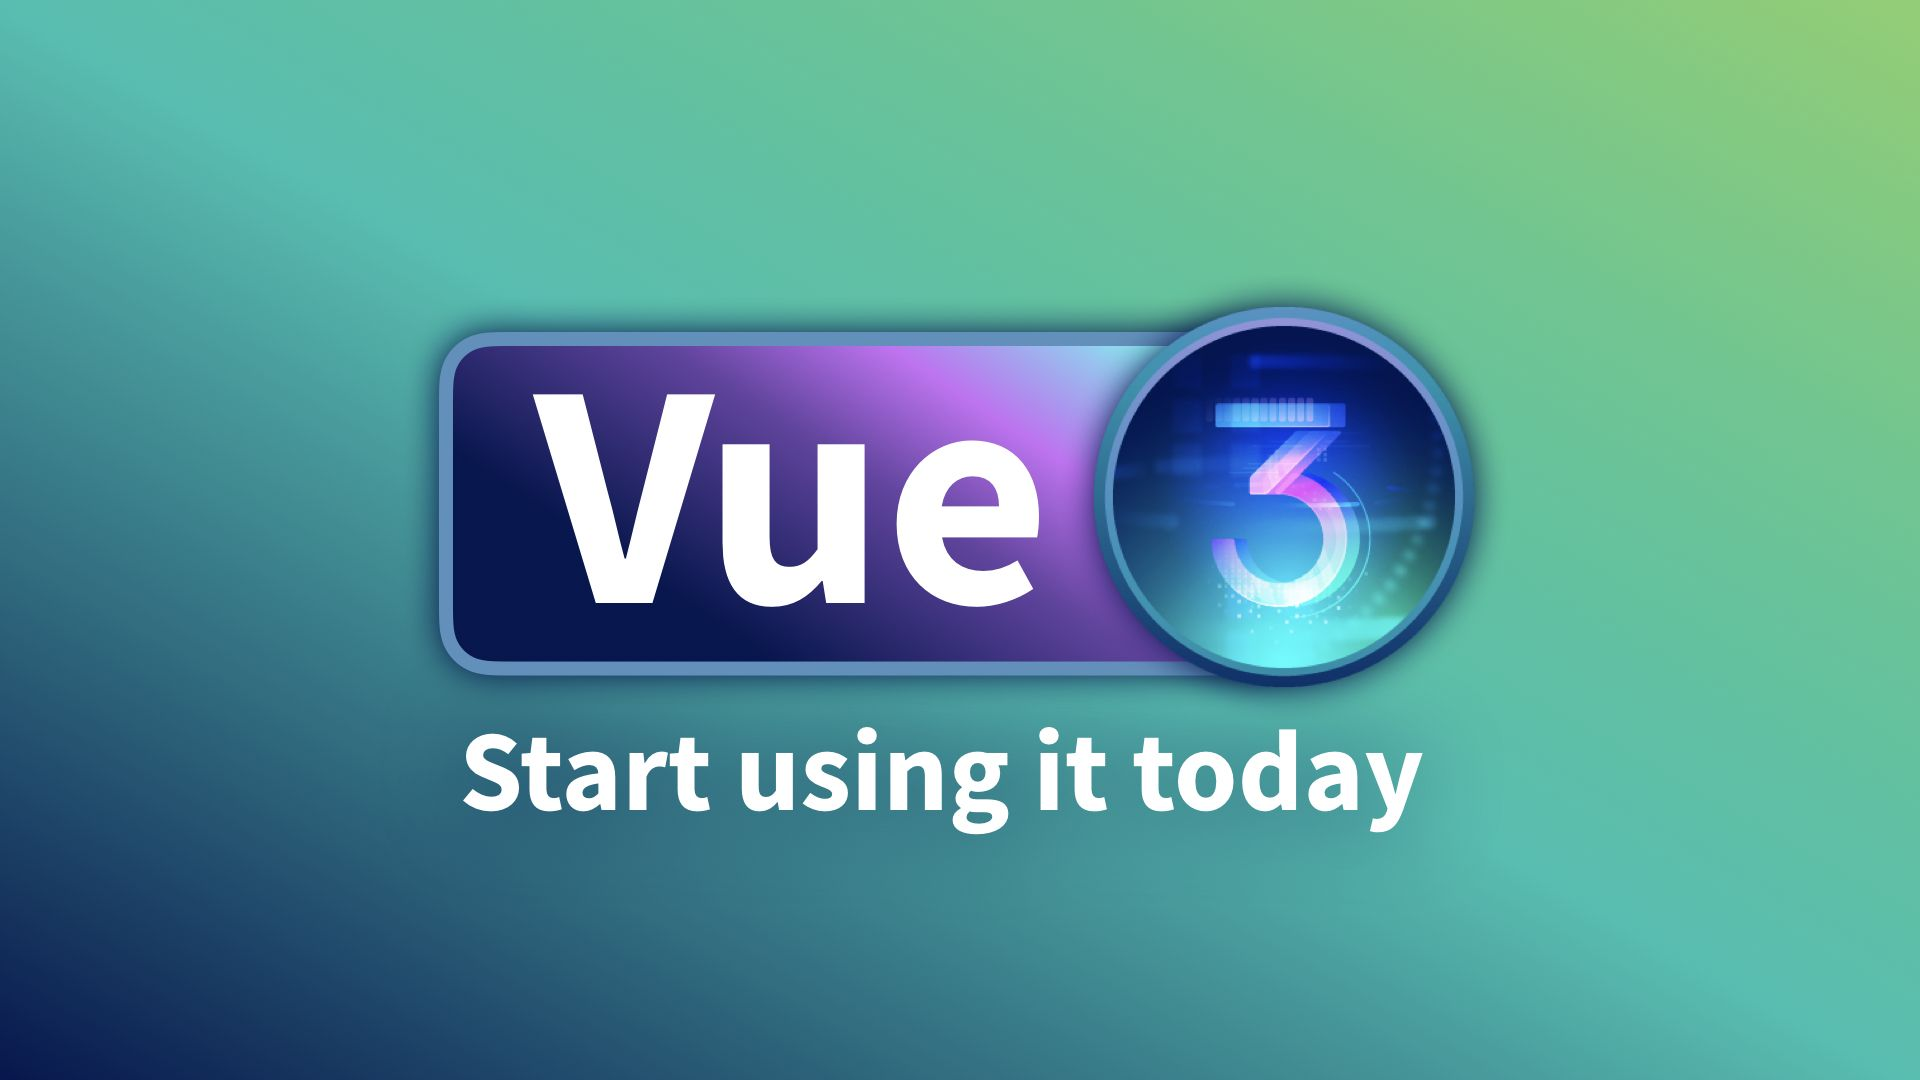 Vue 3: Start Using it Today